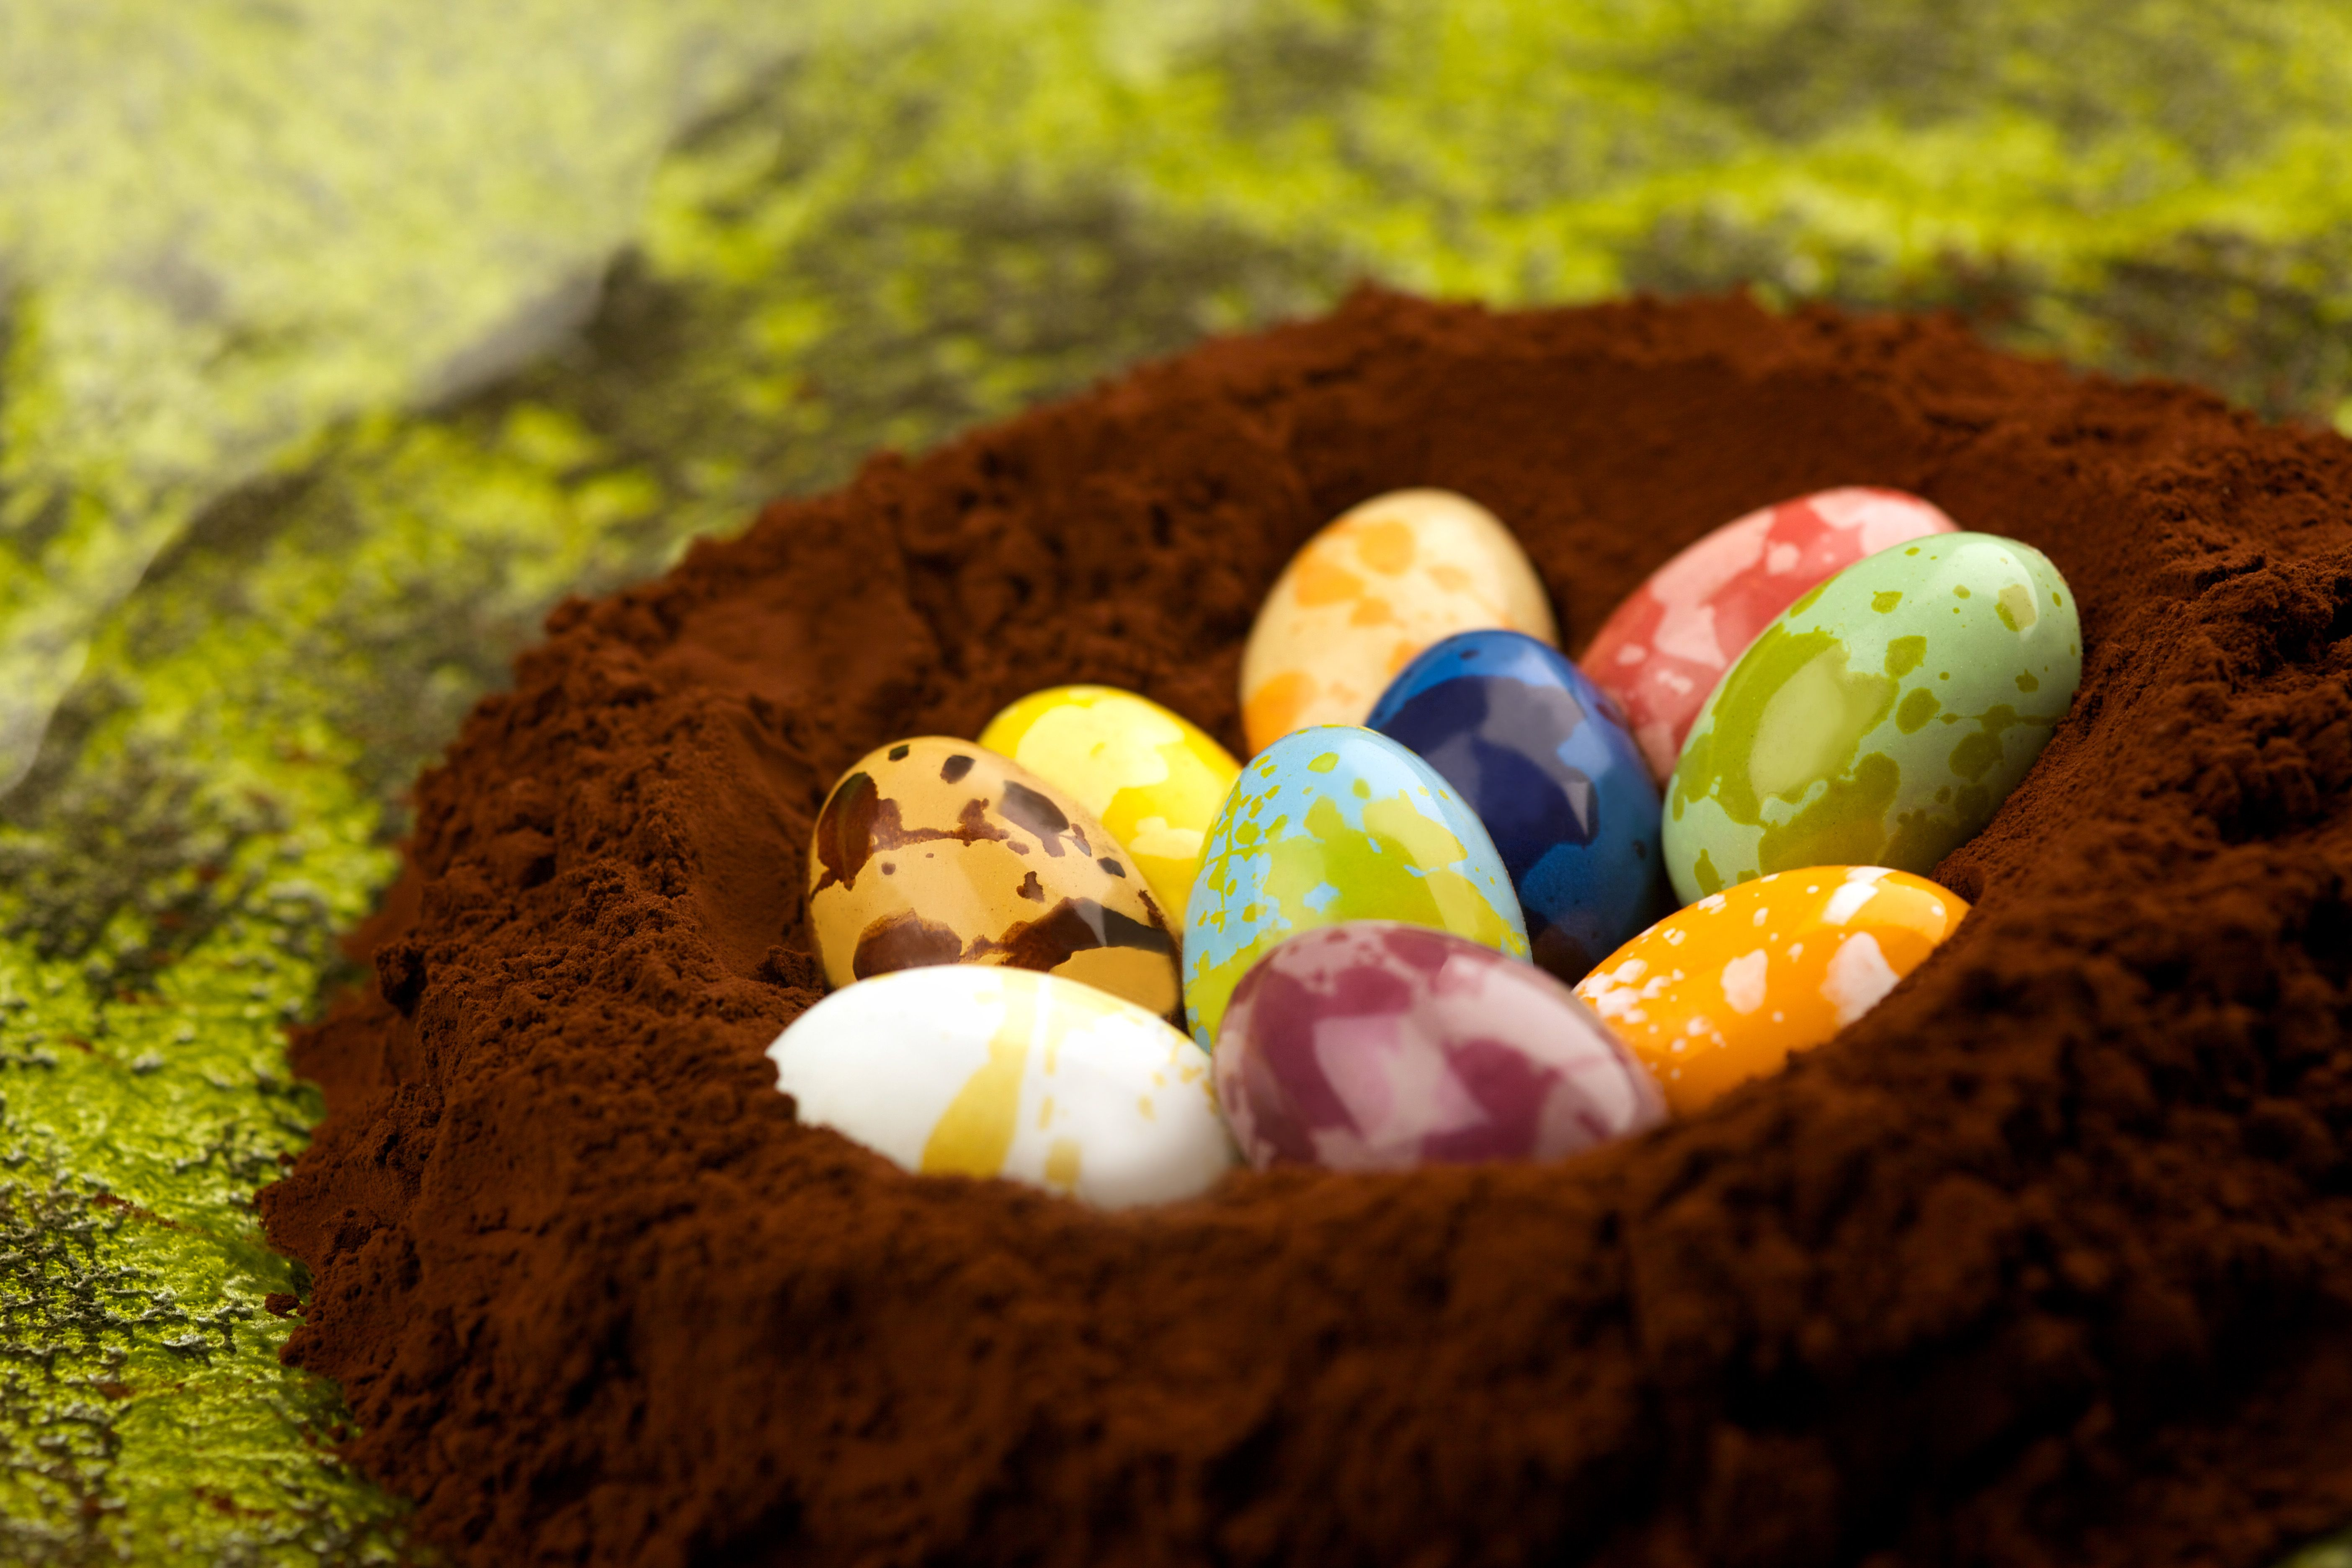 Add flavors of LOVE this #Easter with our 2015 Easter Collection! #NormanLoveConfections